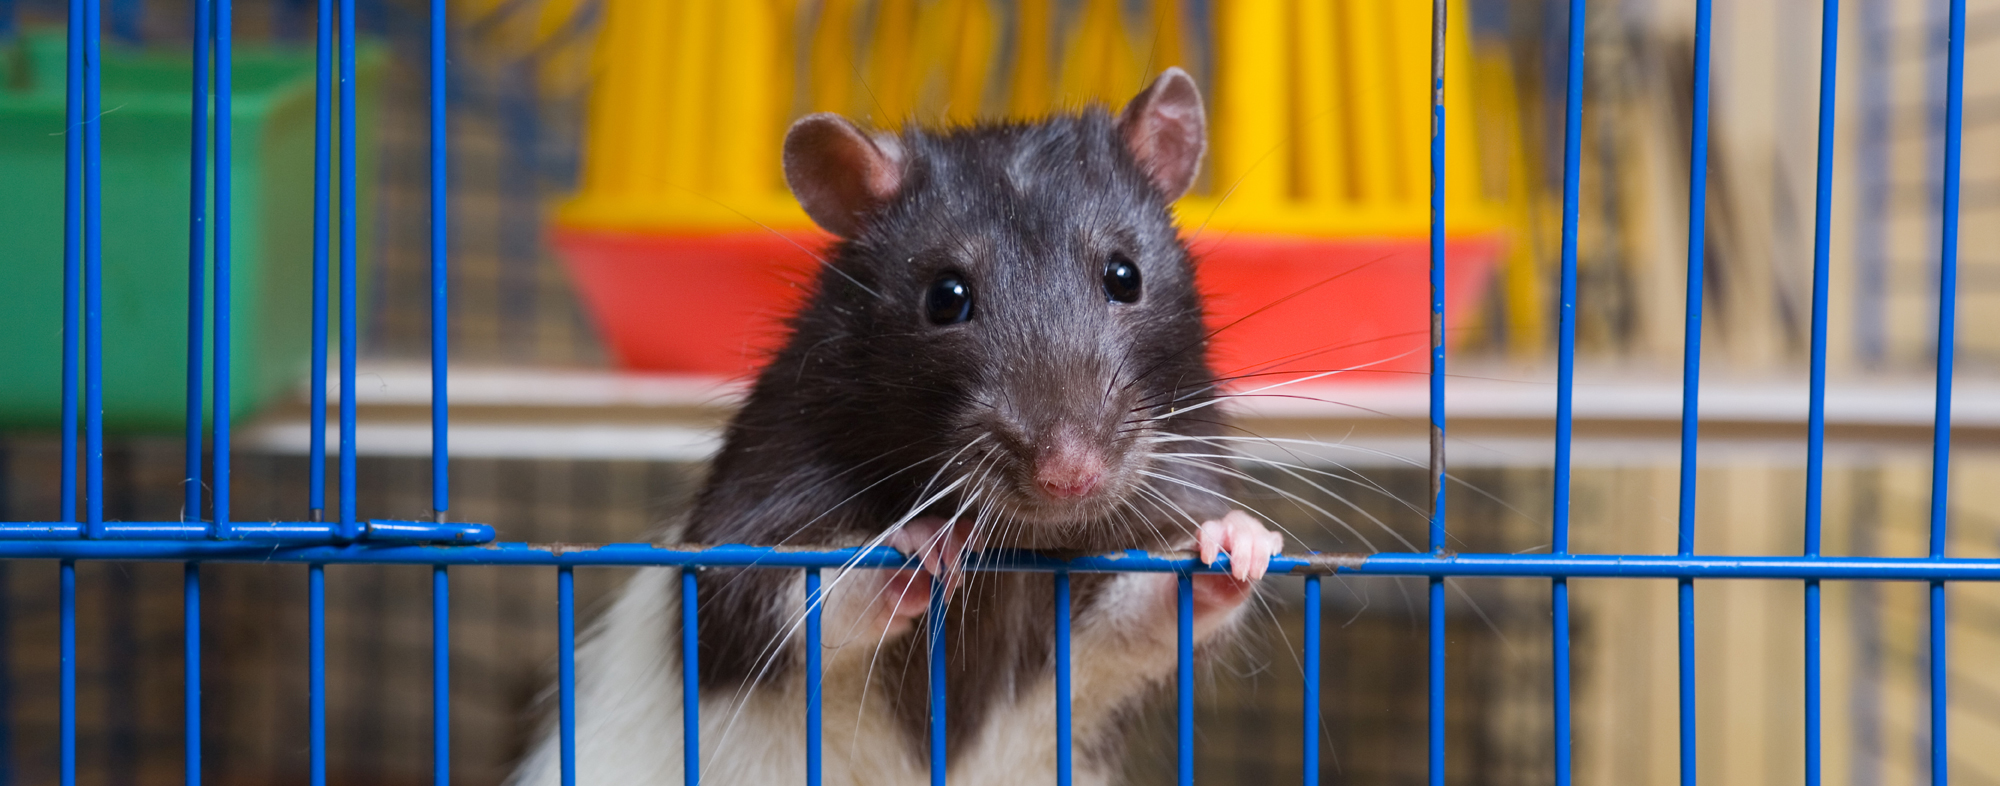 Before going away, provide your small pet rodent with a caretaker